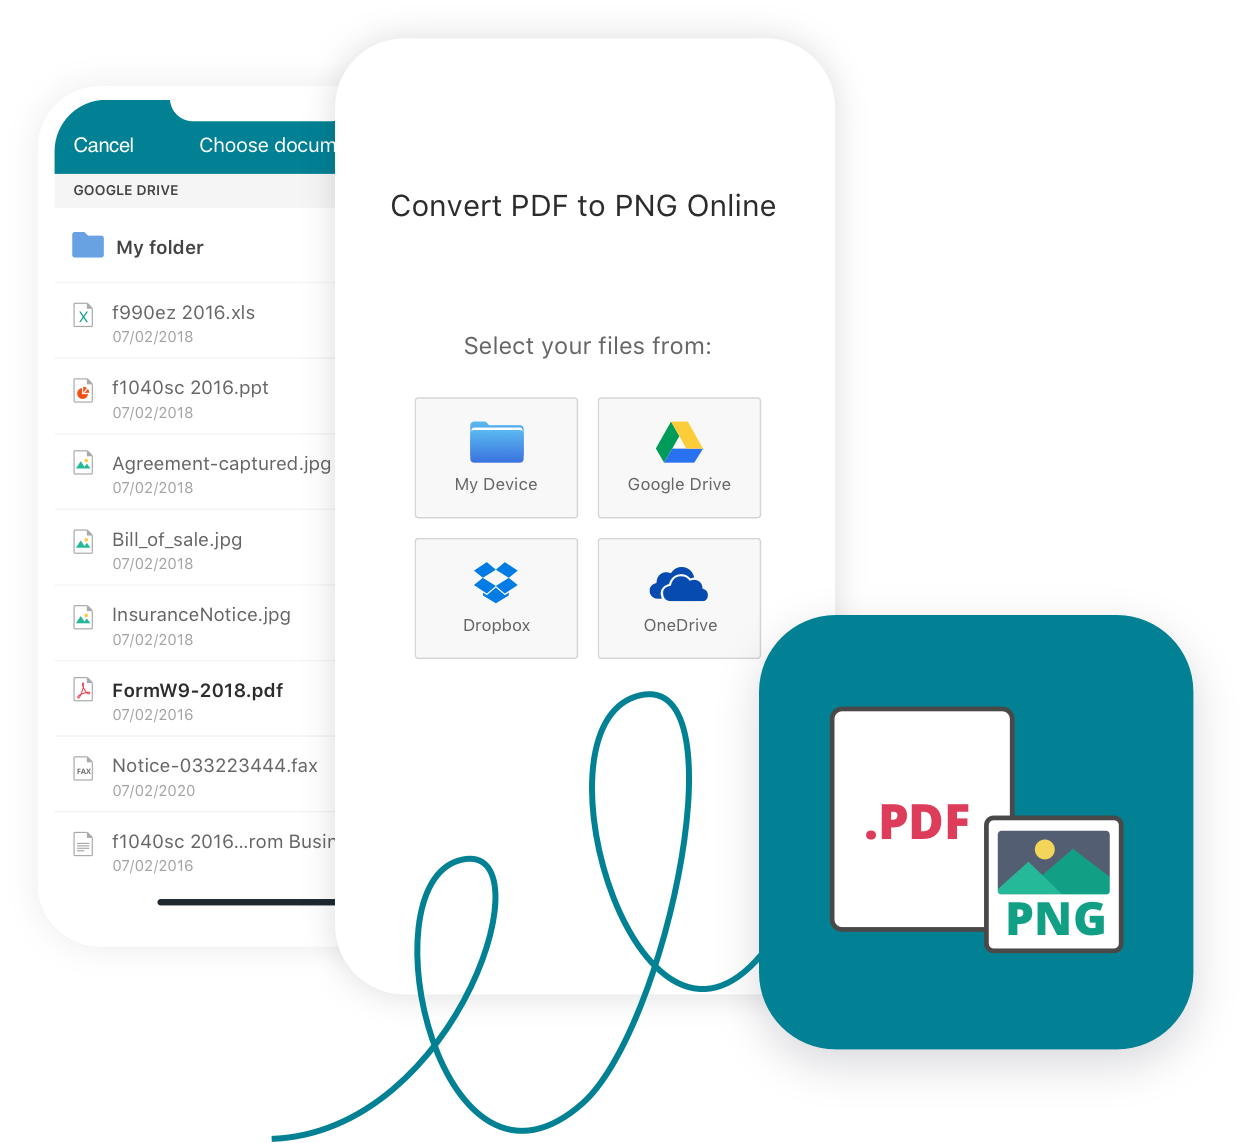 Pdf To Png Convert Pdfs To Png Images Online Free Converter Altoconvertpdftopng